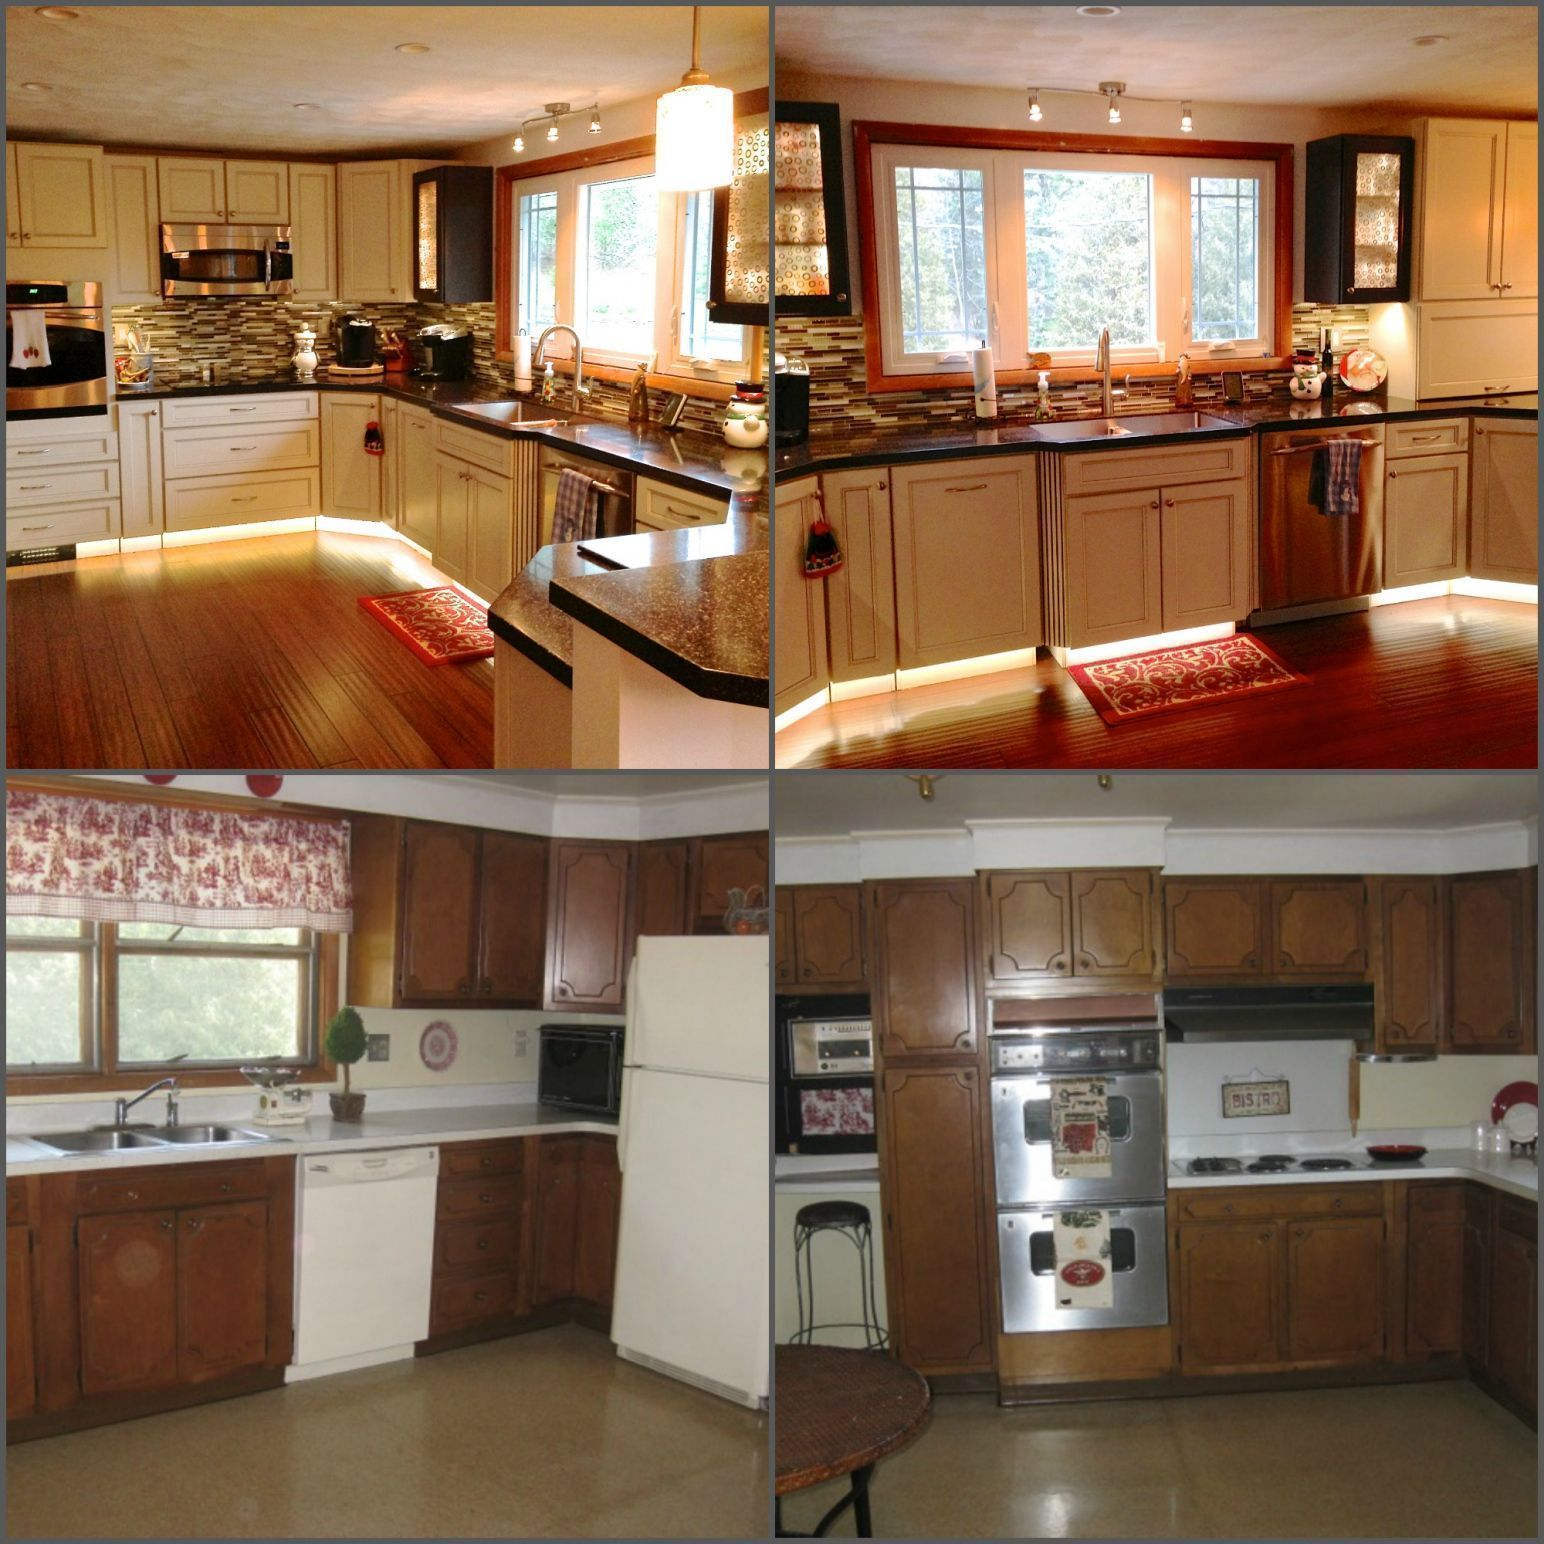 100+ Mobile Home Kitchen Remodeling Ideas - Cabinet Ideas for ...